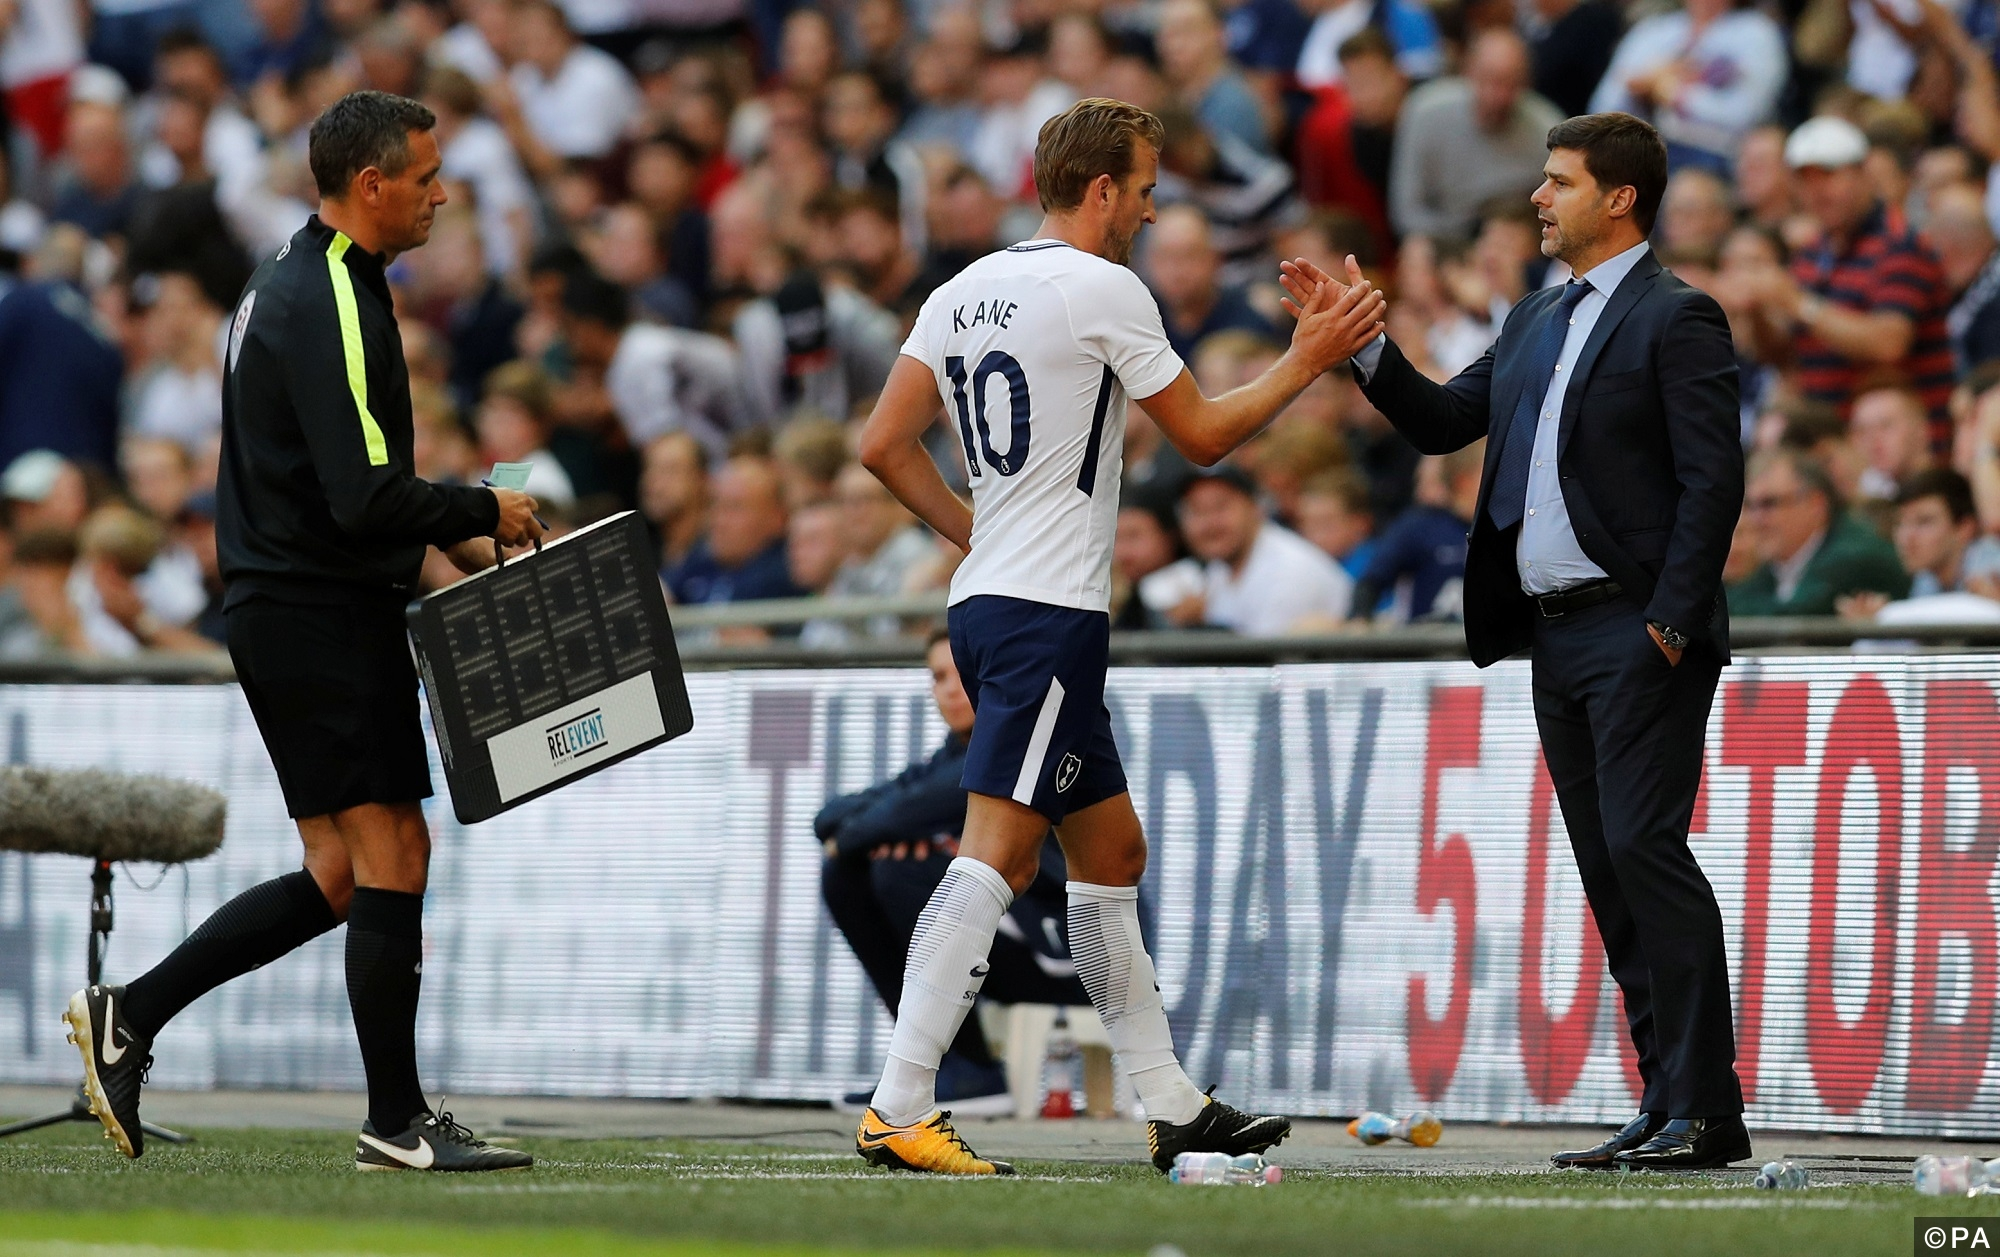 Newcastle vs Tottenham predictions, free betting tips and match preview